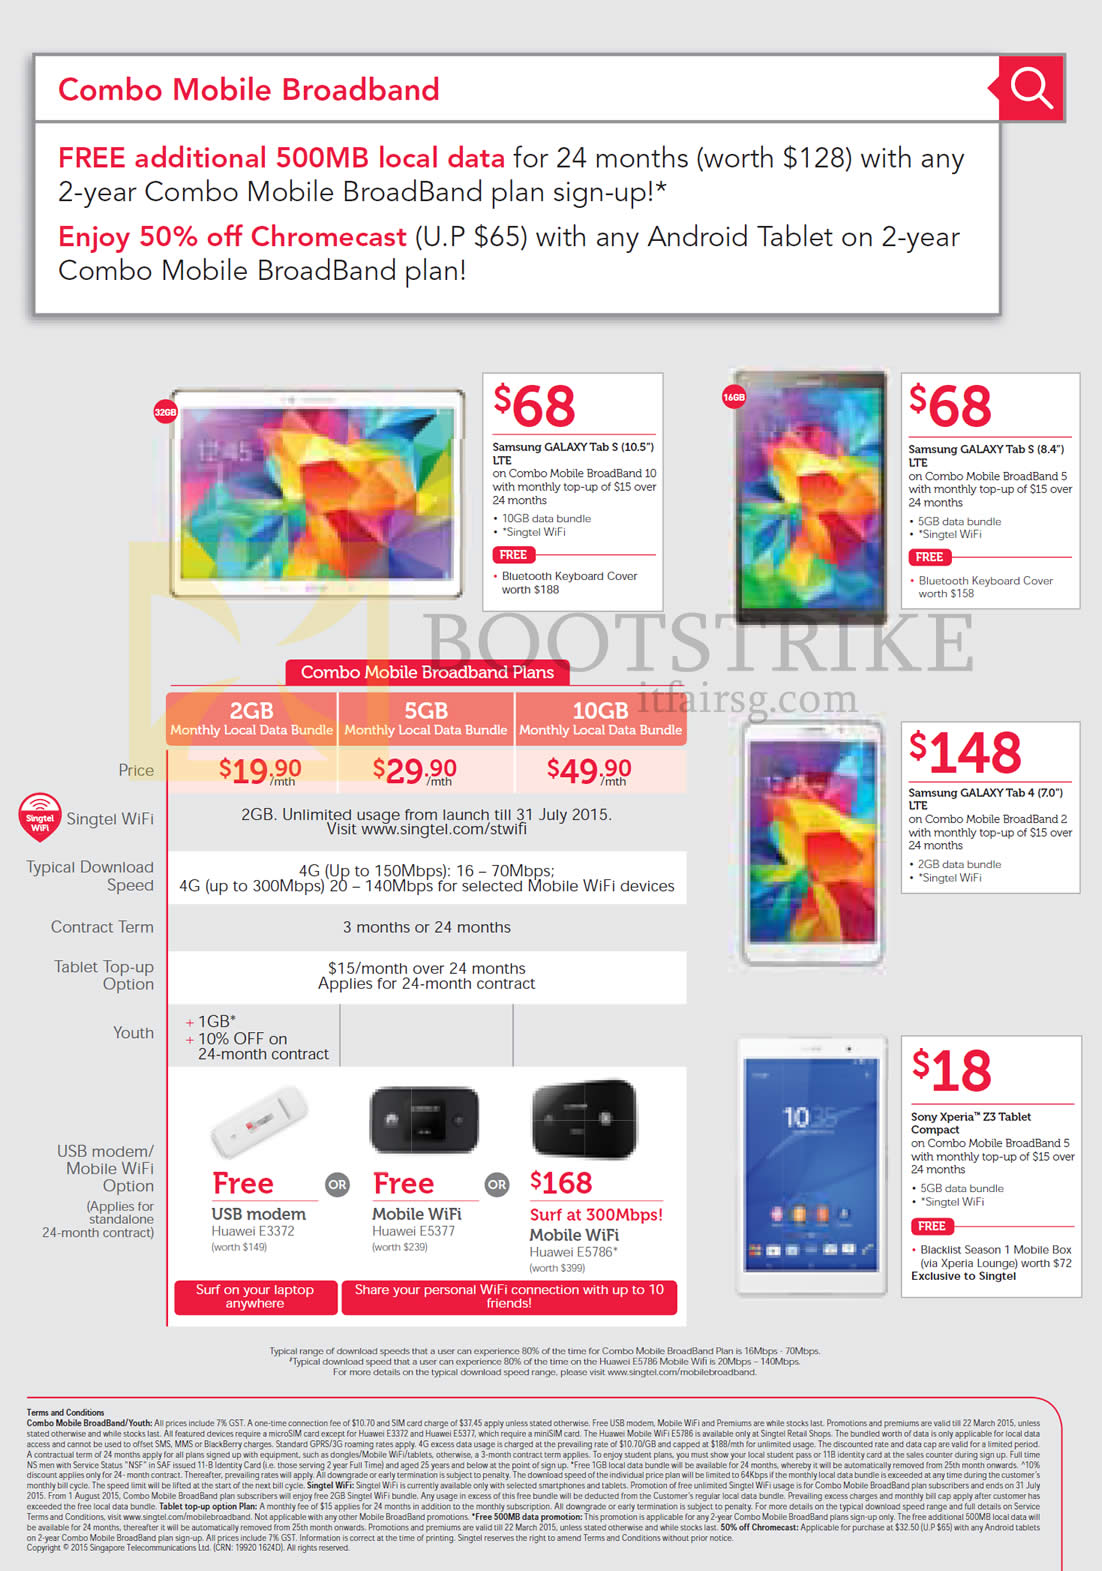 Singtel Mobile Broadband, Free Additional 500MB Local Data